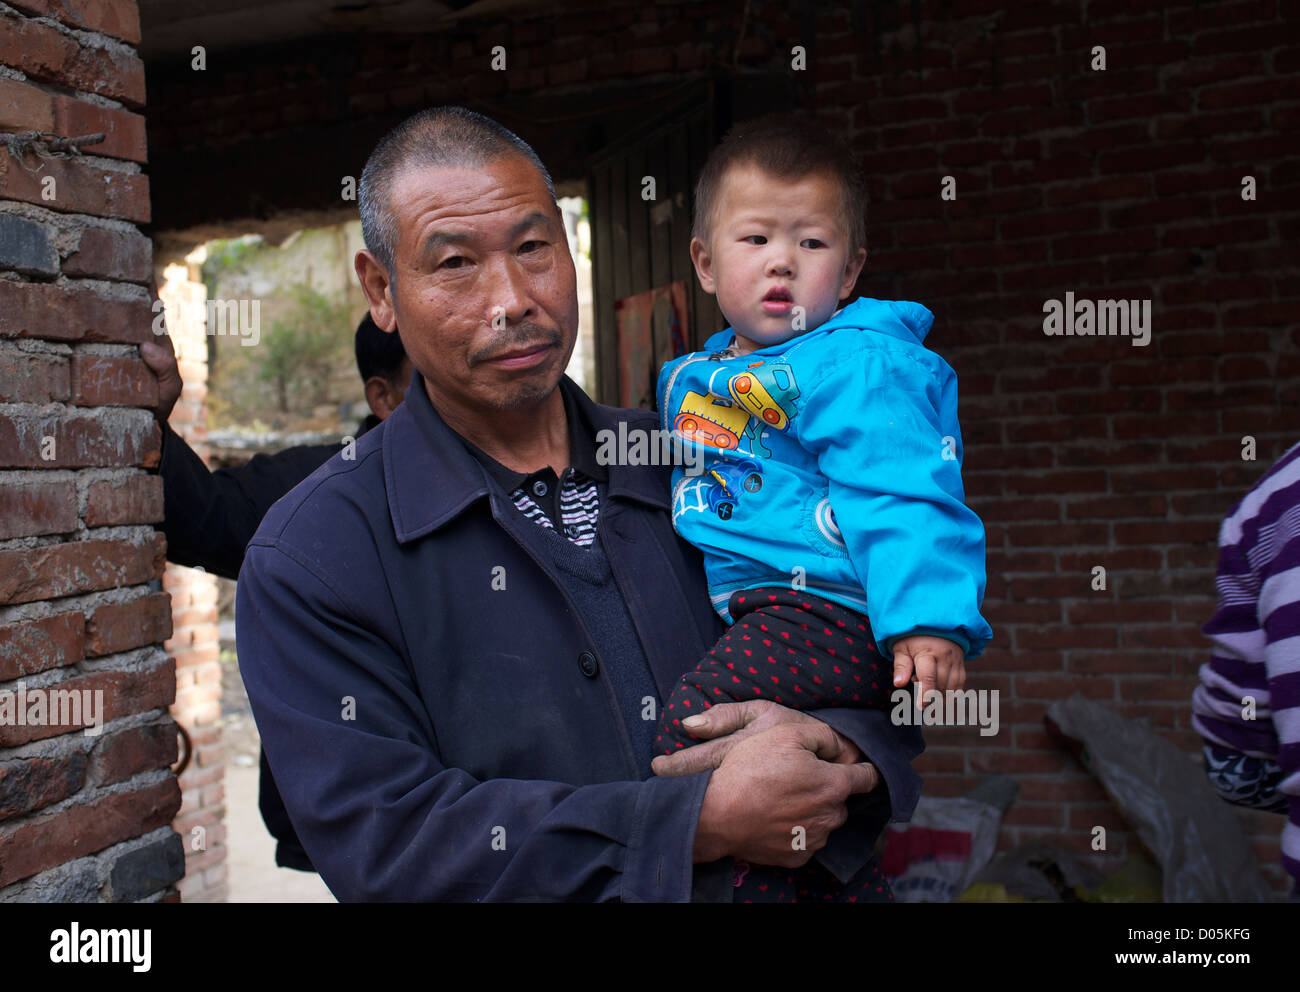 An elder man holds a little boy at a courtyard in Laofen village, Pingshan county, Hebei, China. 23-Oct-2012 - Stock Image